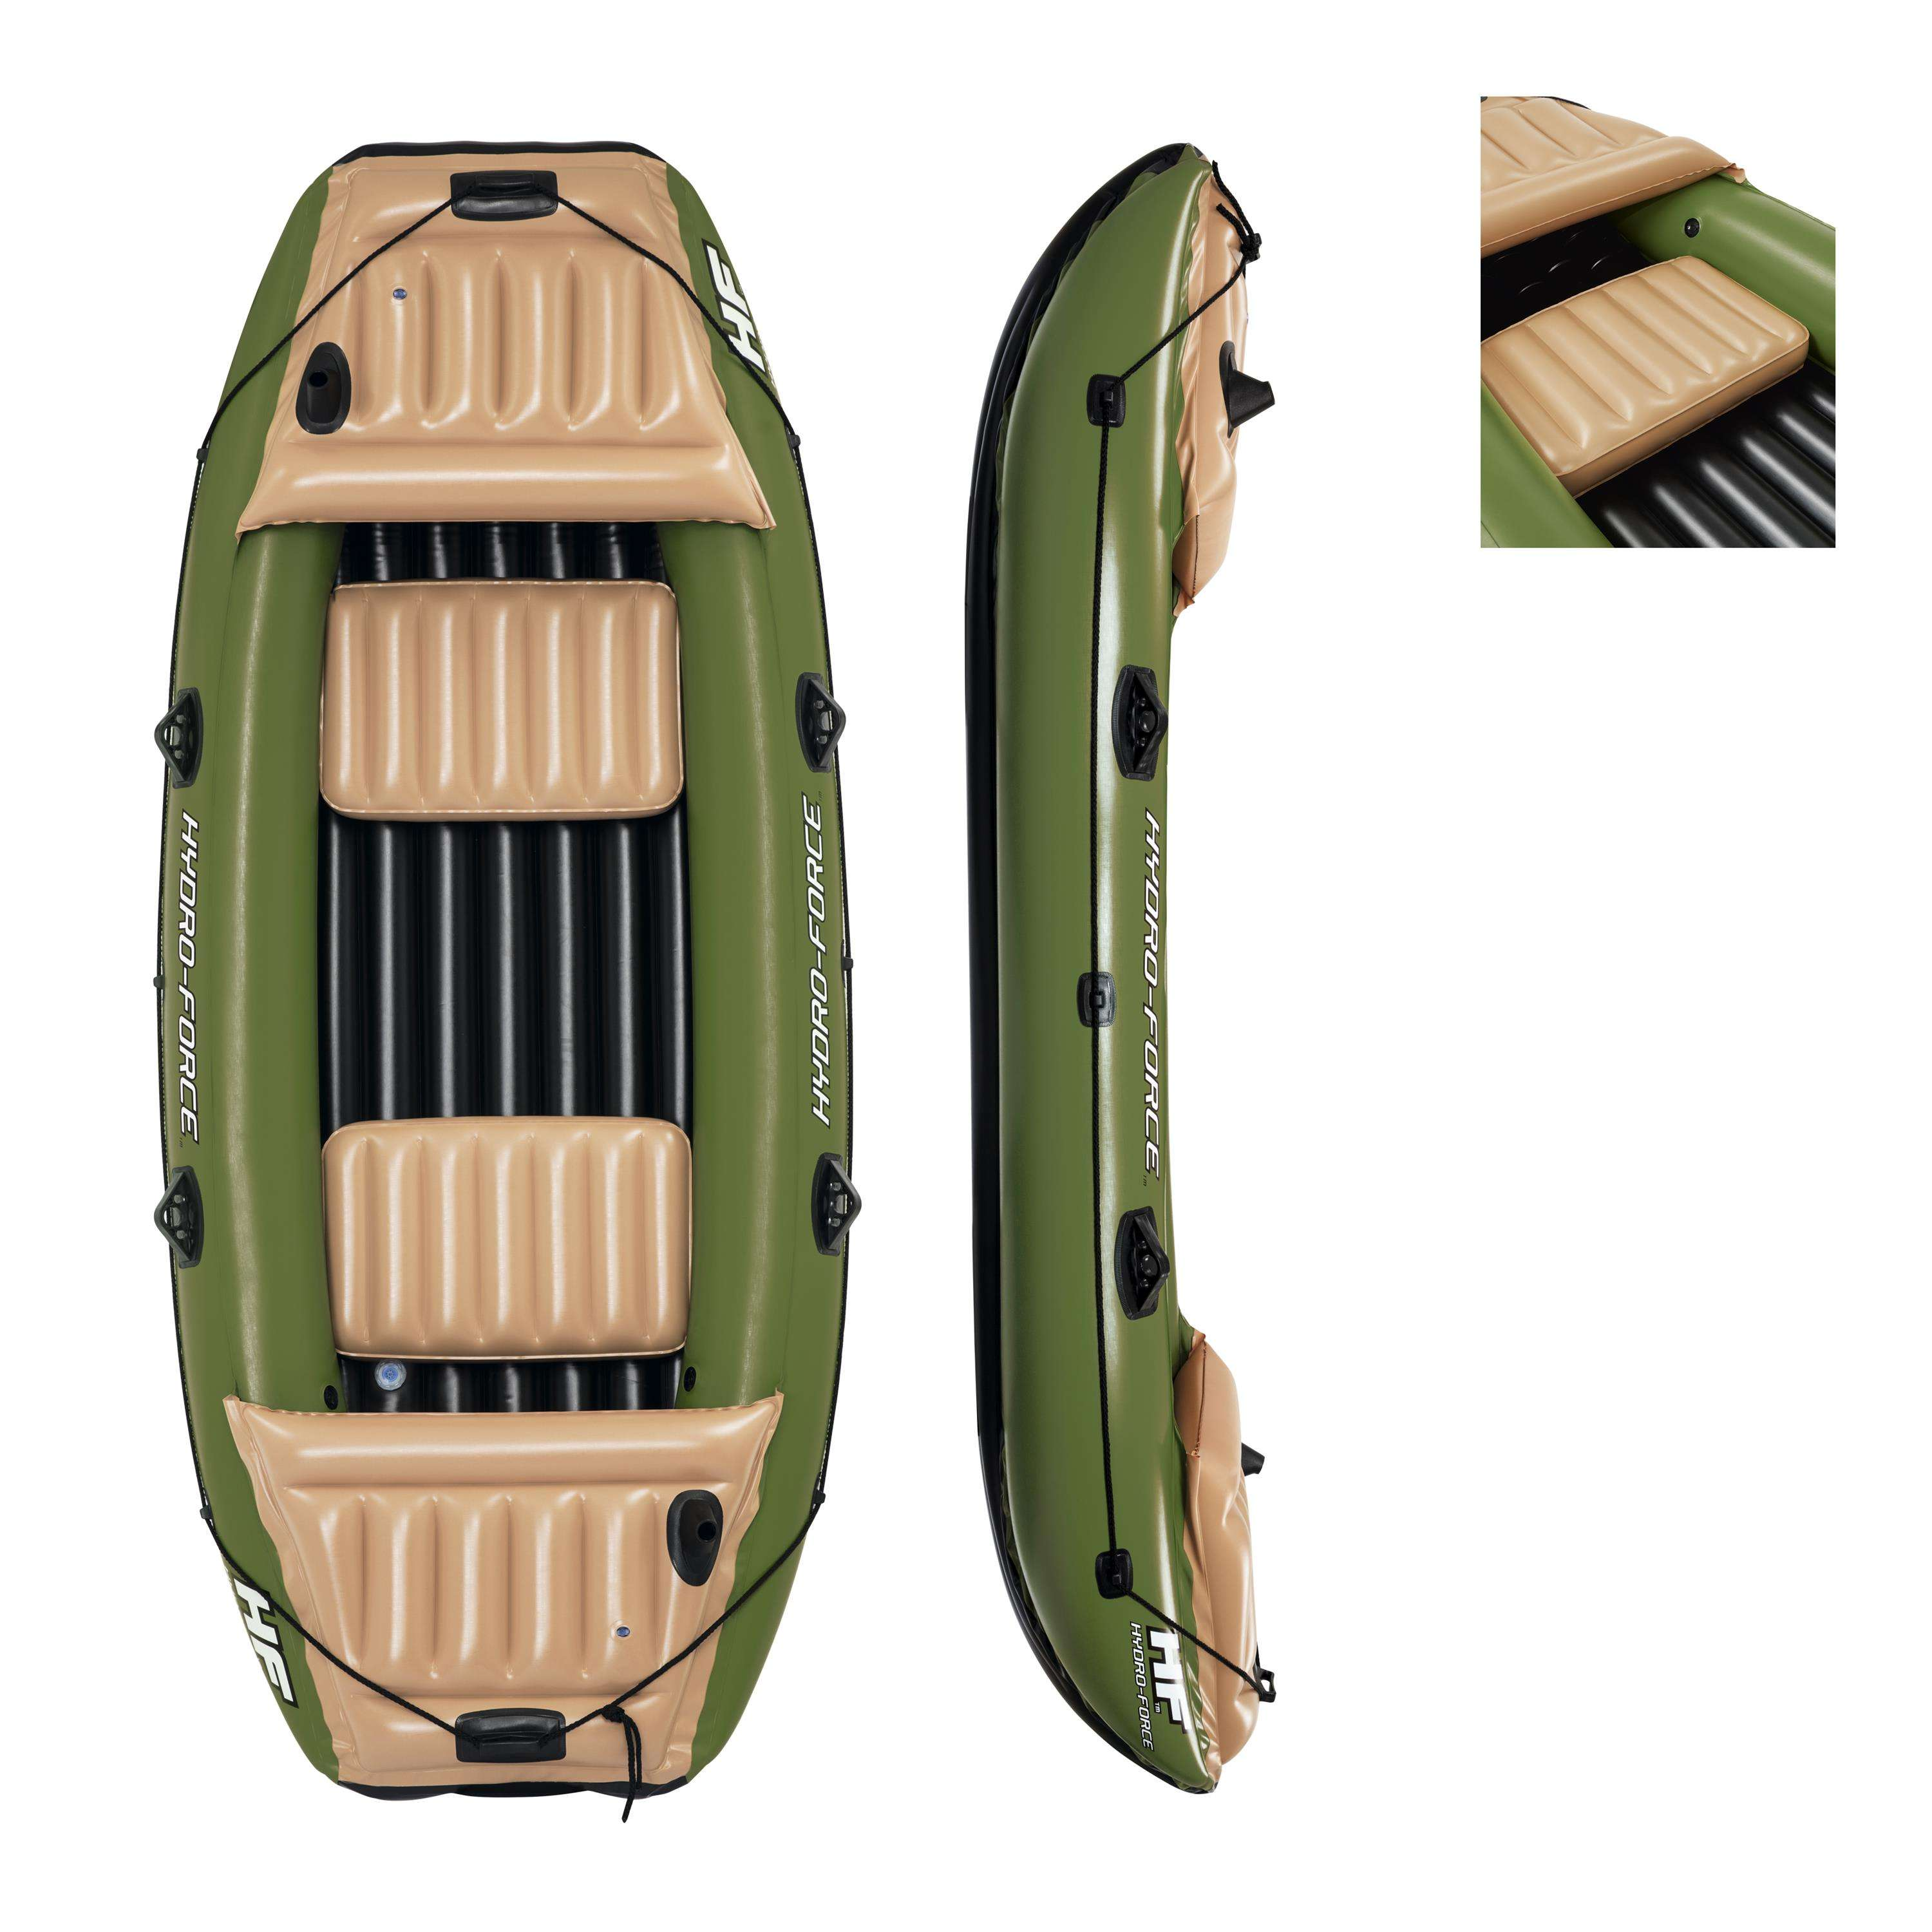 Bestway 65008 Neva III Inflatable Raft inflatable fishing boat for water sports for 3 person 3.16m x 1.24m